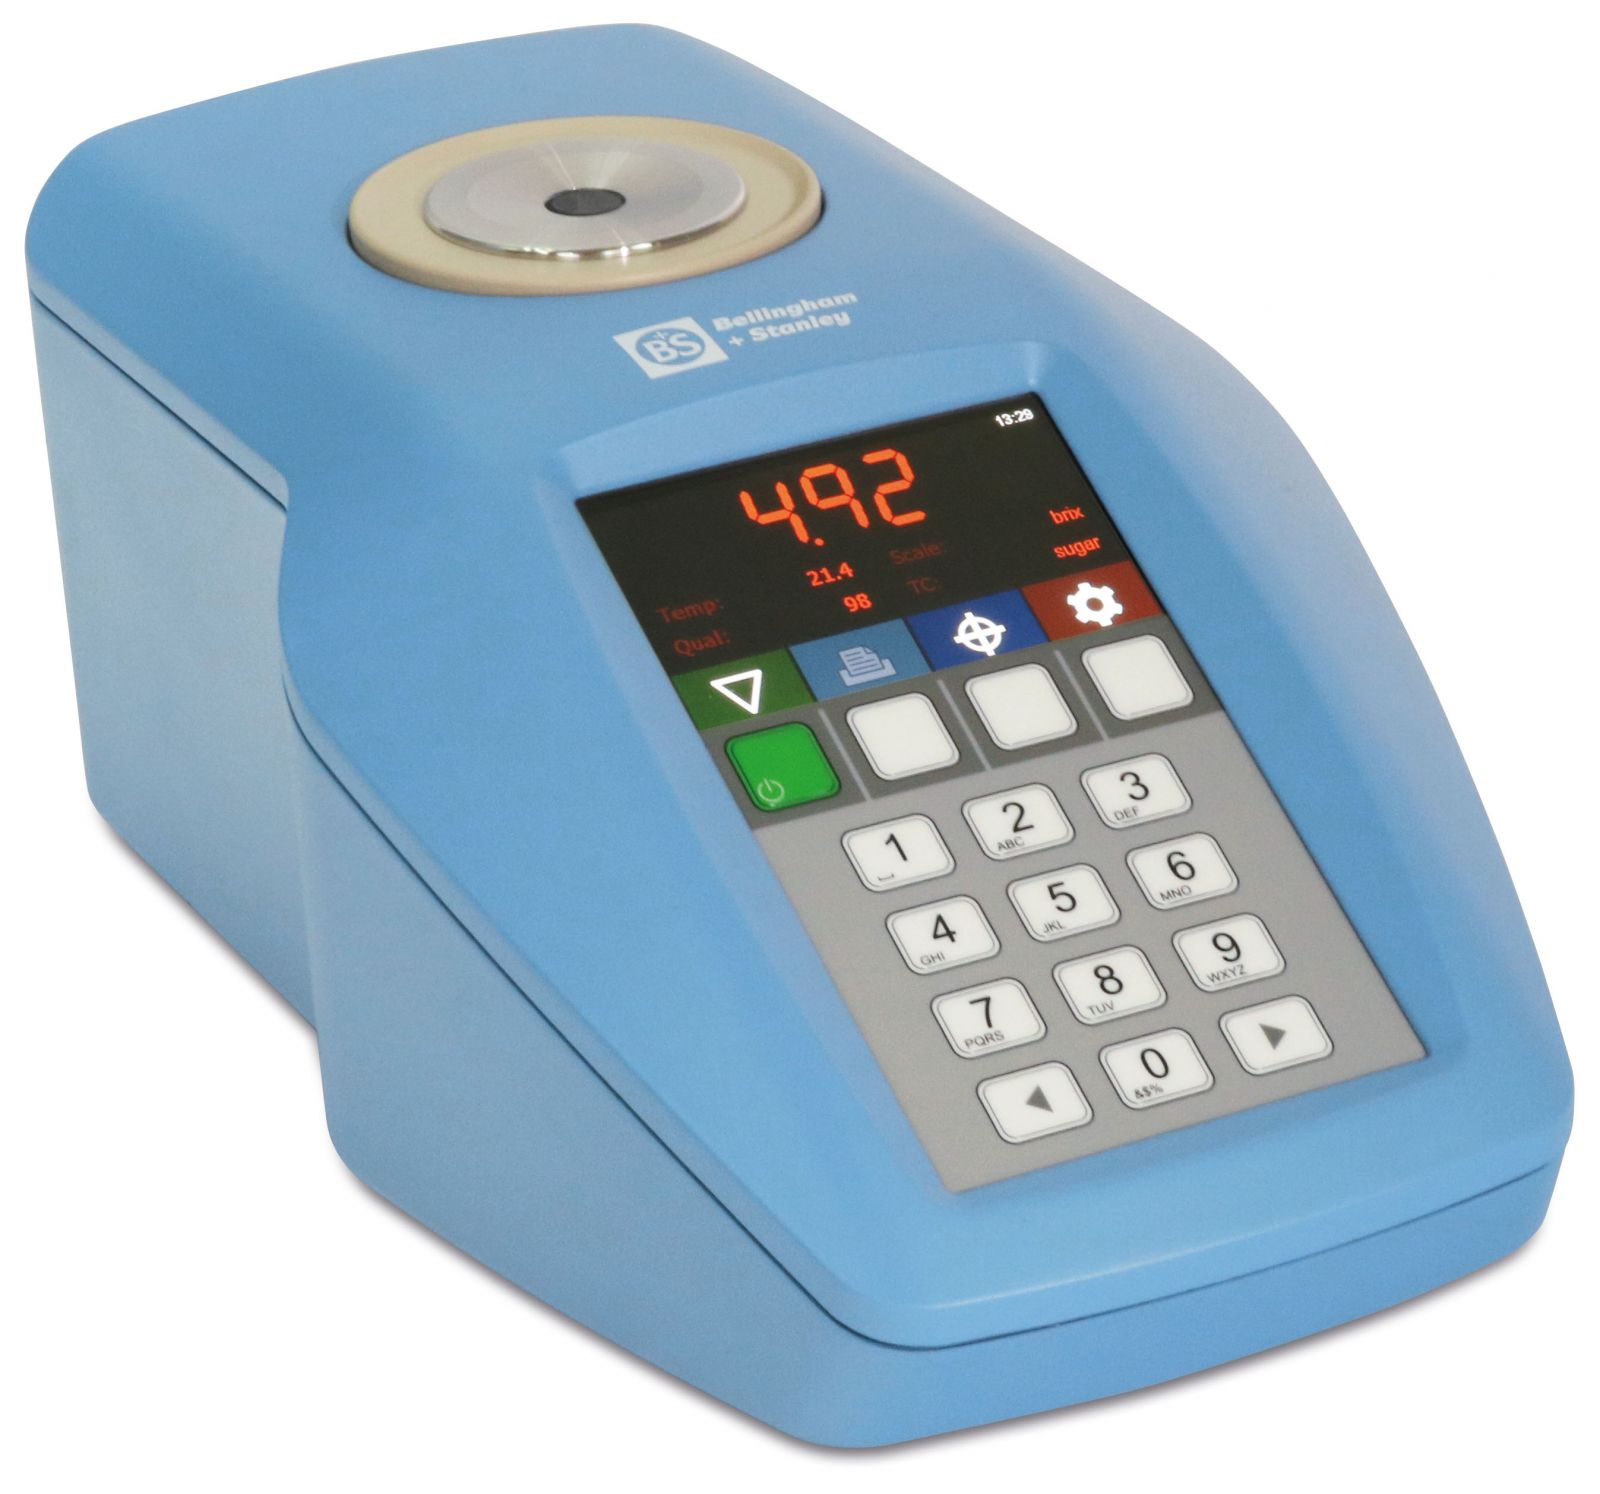 Robust Switch Membrane and USB Connectivity Bellingham Bellingham /& Stanley 19-10 RFM732-M Refractometer with Latest Integral 4 Full Colour Display Stanley Inc